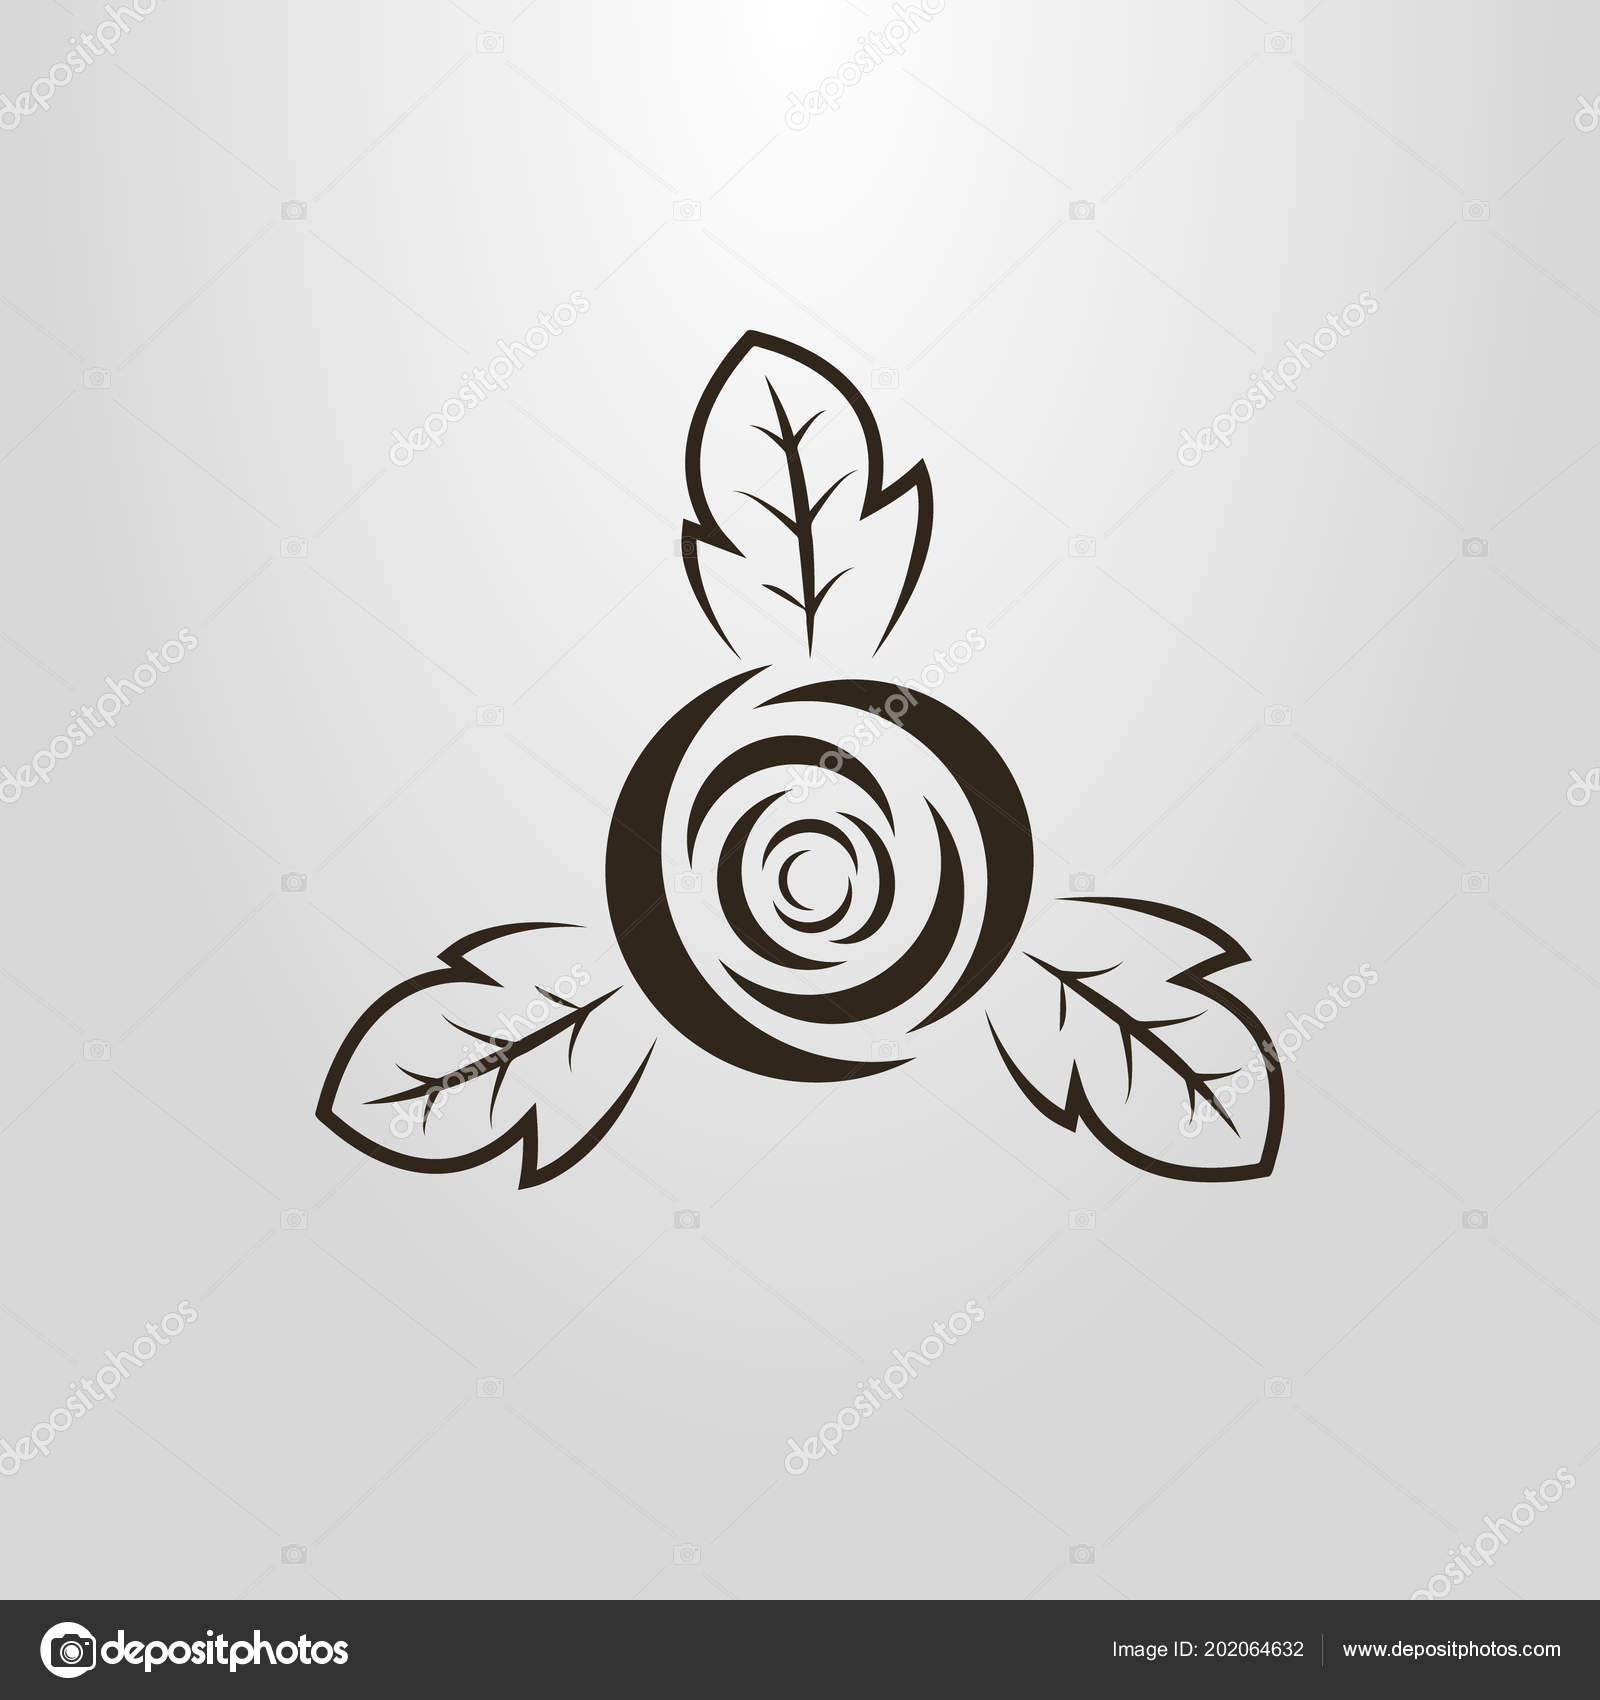 Black White Simple Vector Pictogram Abstract Rose Bud